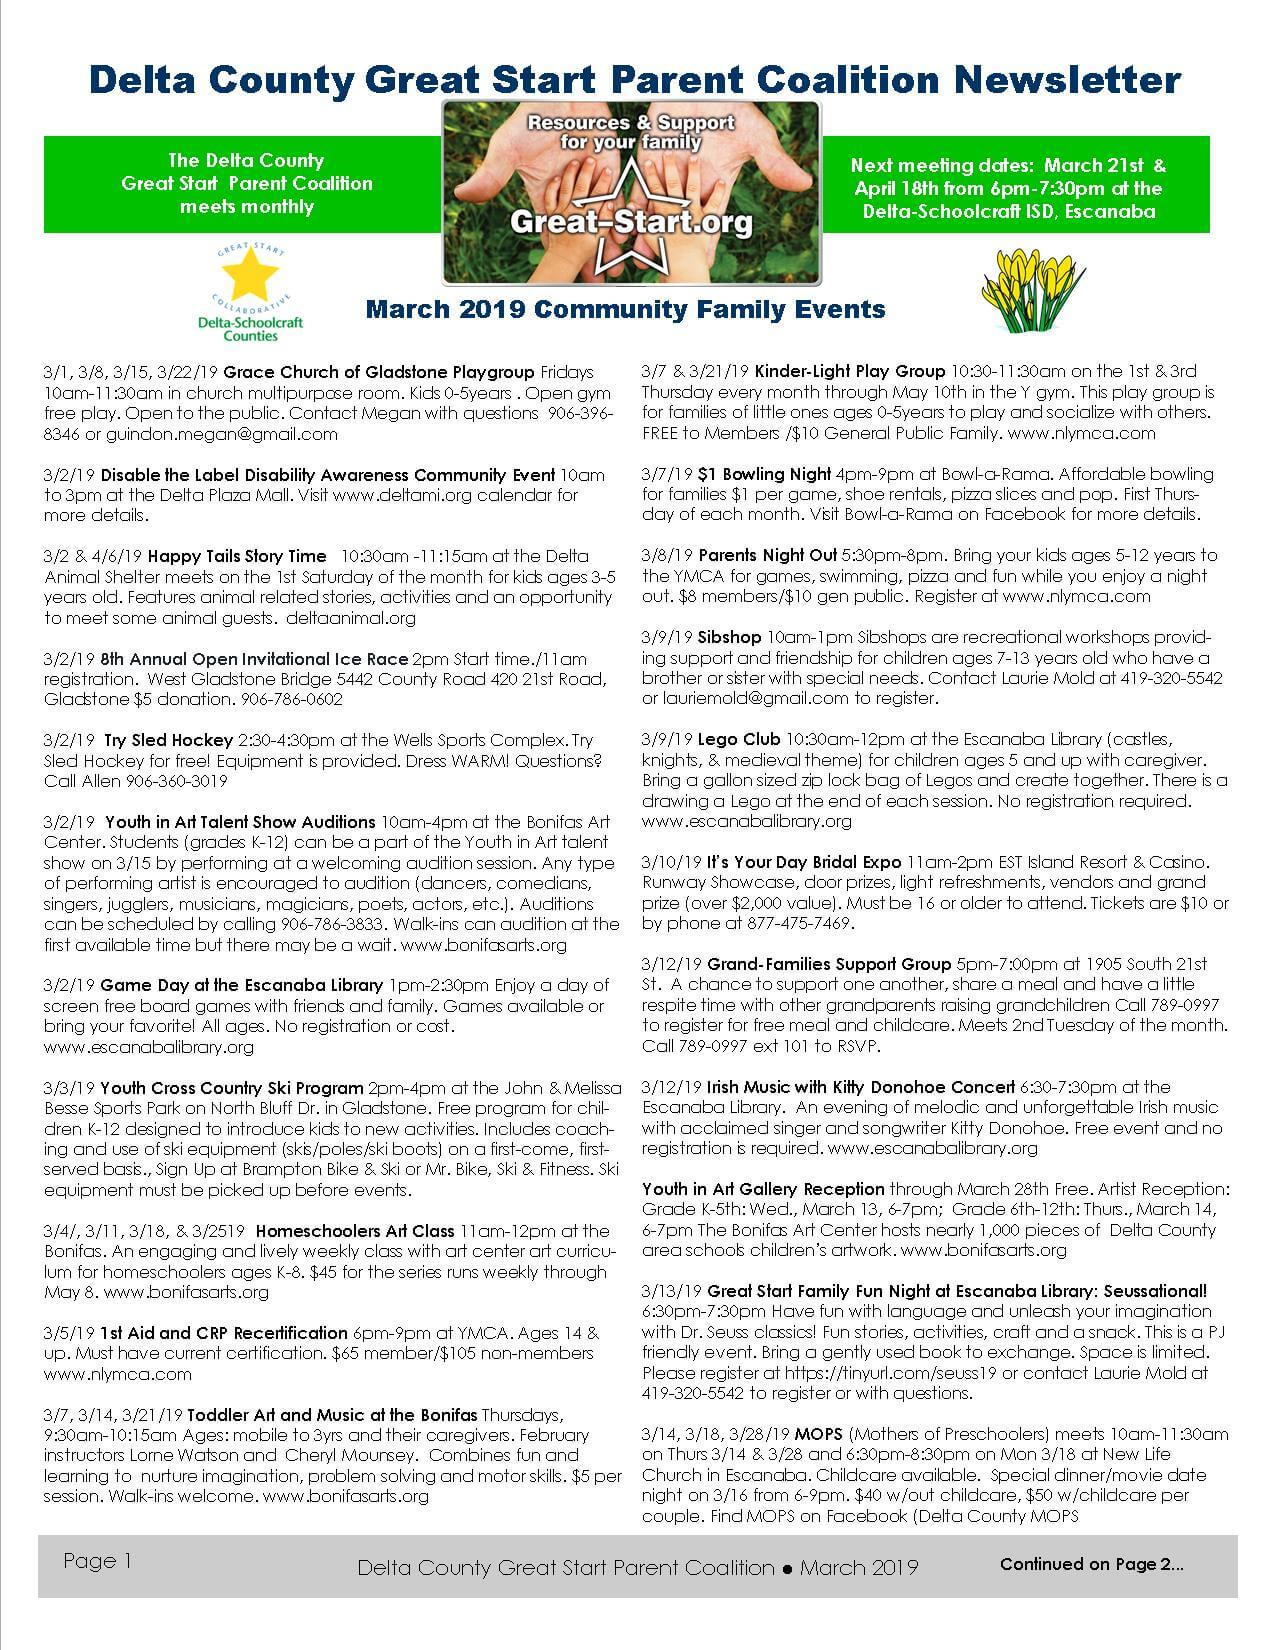 DCGSPC Mar 2019 Newsletter pg1of2